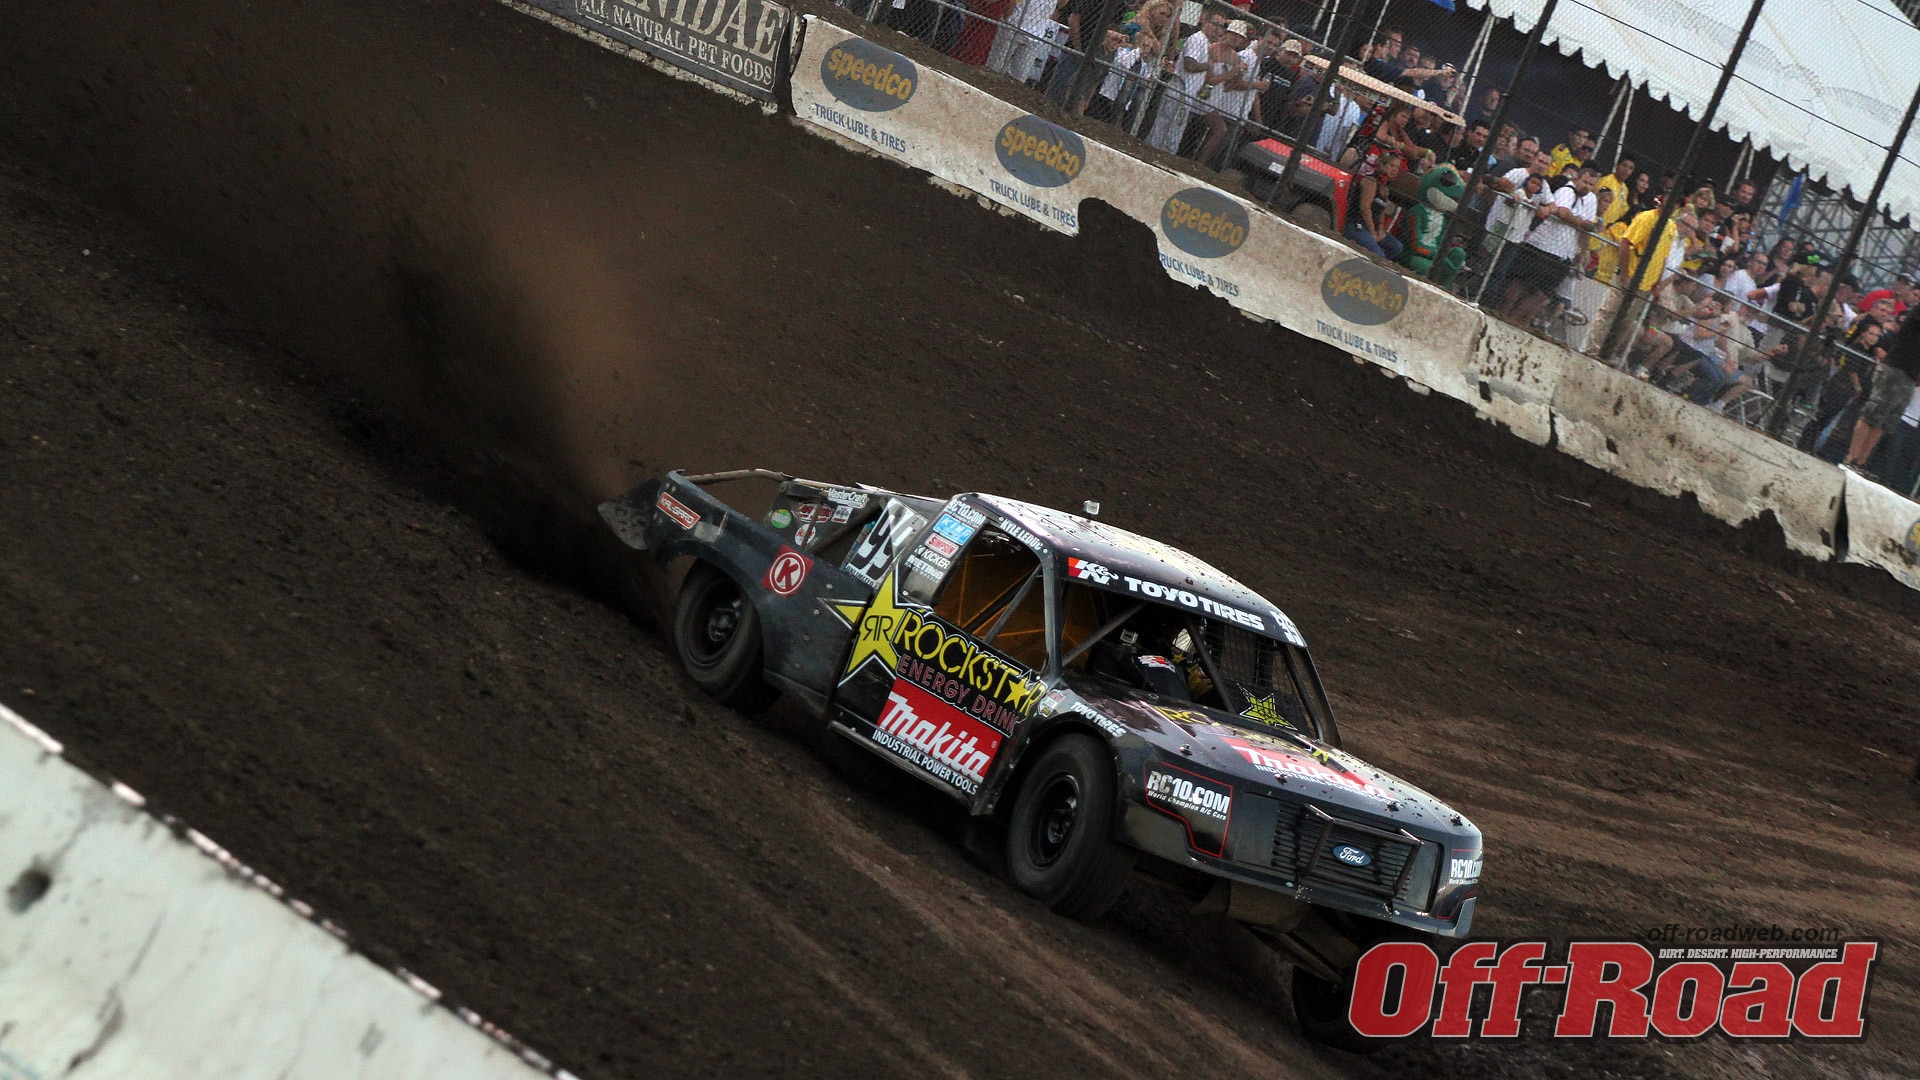 081010or 6795+lucas oil off road racing series+round 9 pro 4 unlimited